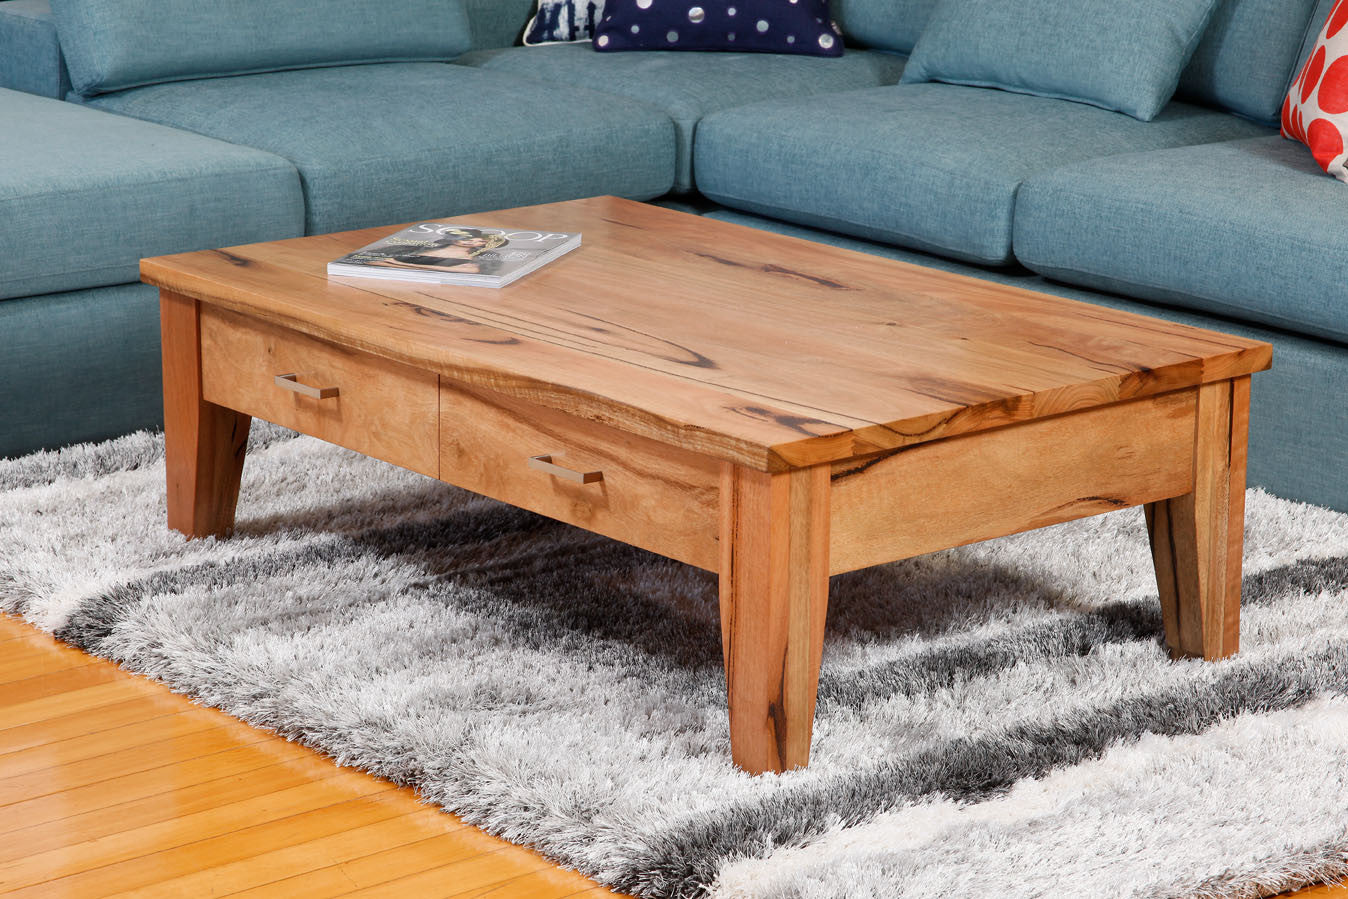 Two Drawer Solid Marri Or Jarrah Timber Coffee Table Bespoke Furniture Gallery Perth